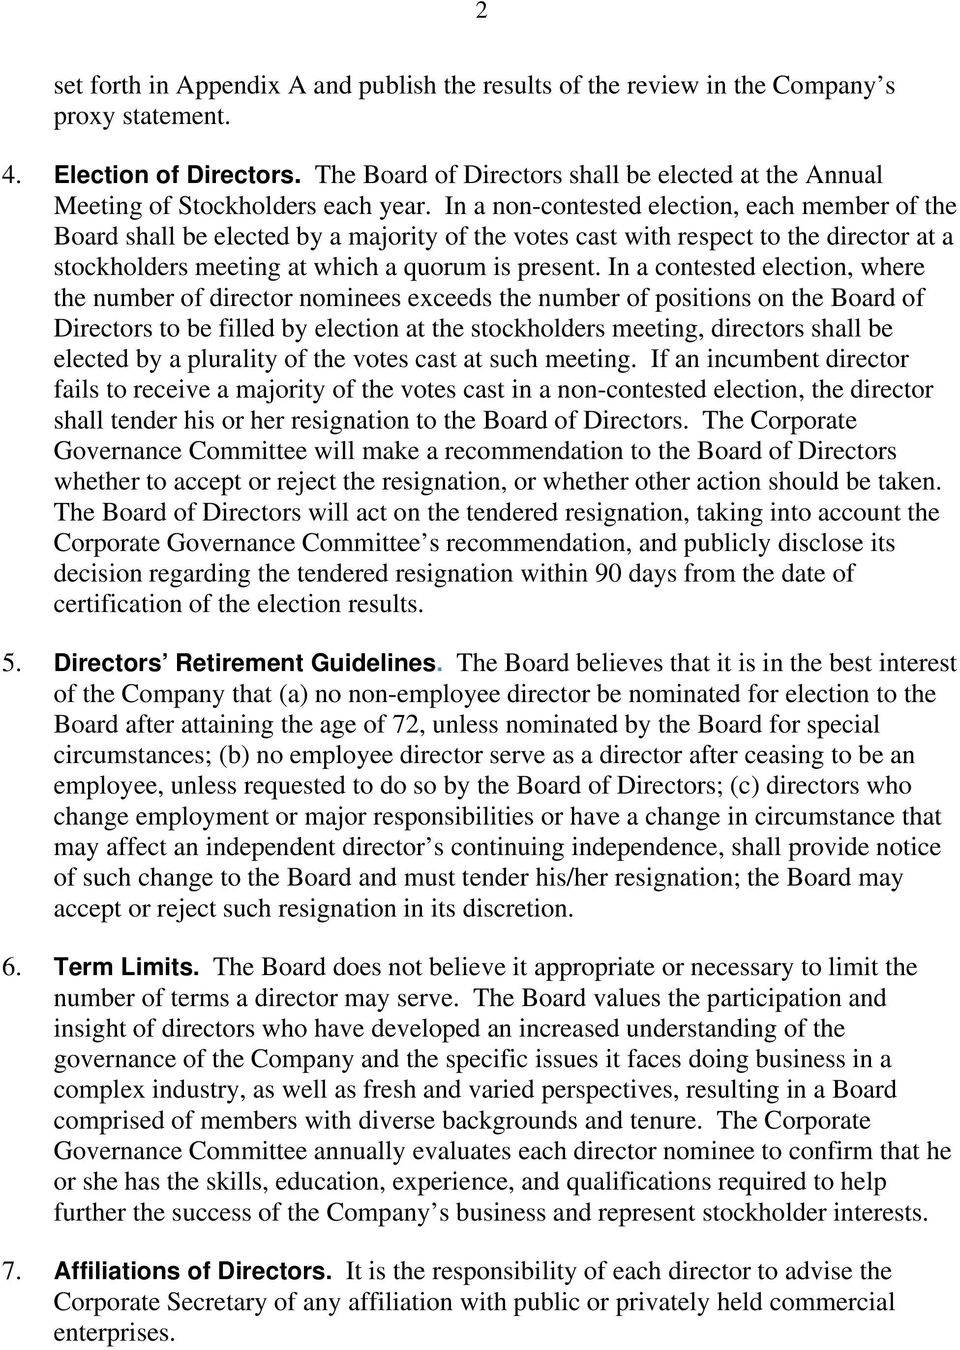 In a non-contested election, each member of the Board shall be elected by a majority of the votes cast with respect to the director at a stockholders meeting at which a quorum is present.